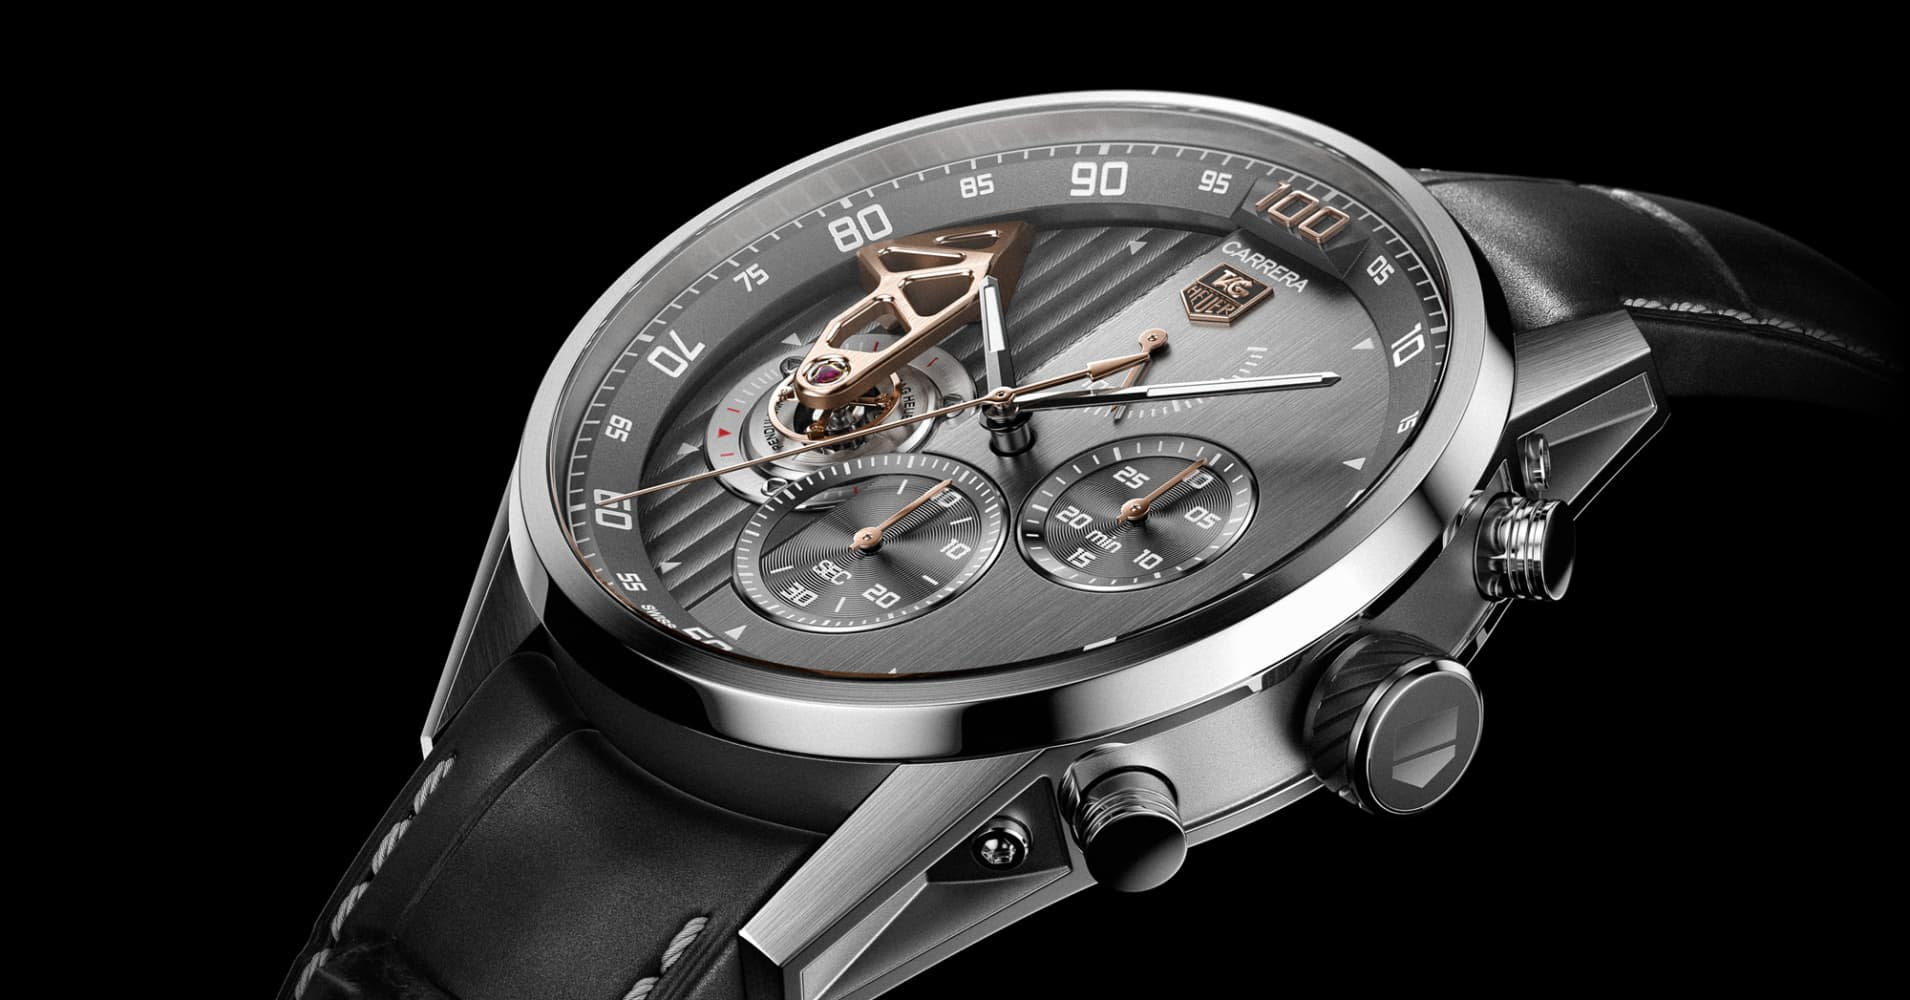 Tag Heuer To Make Watch With Google, Intel In Apple Watch